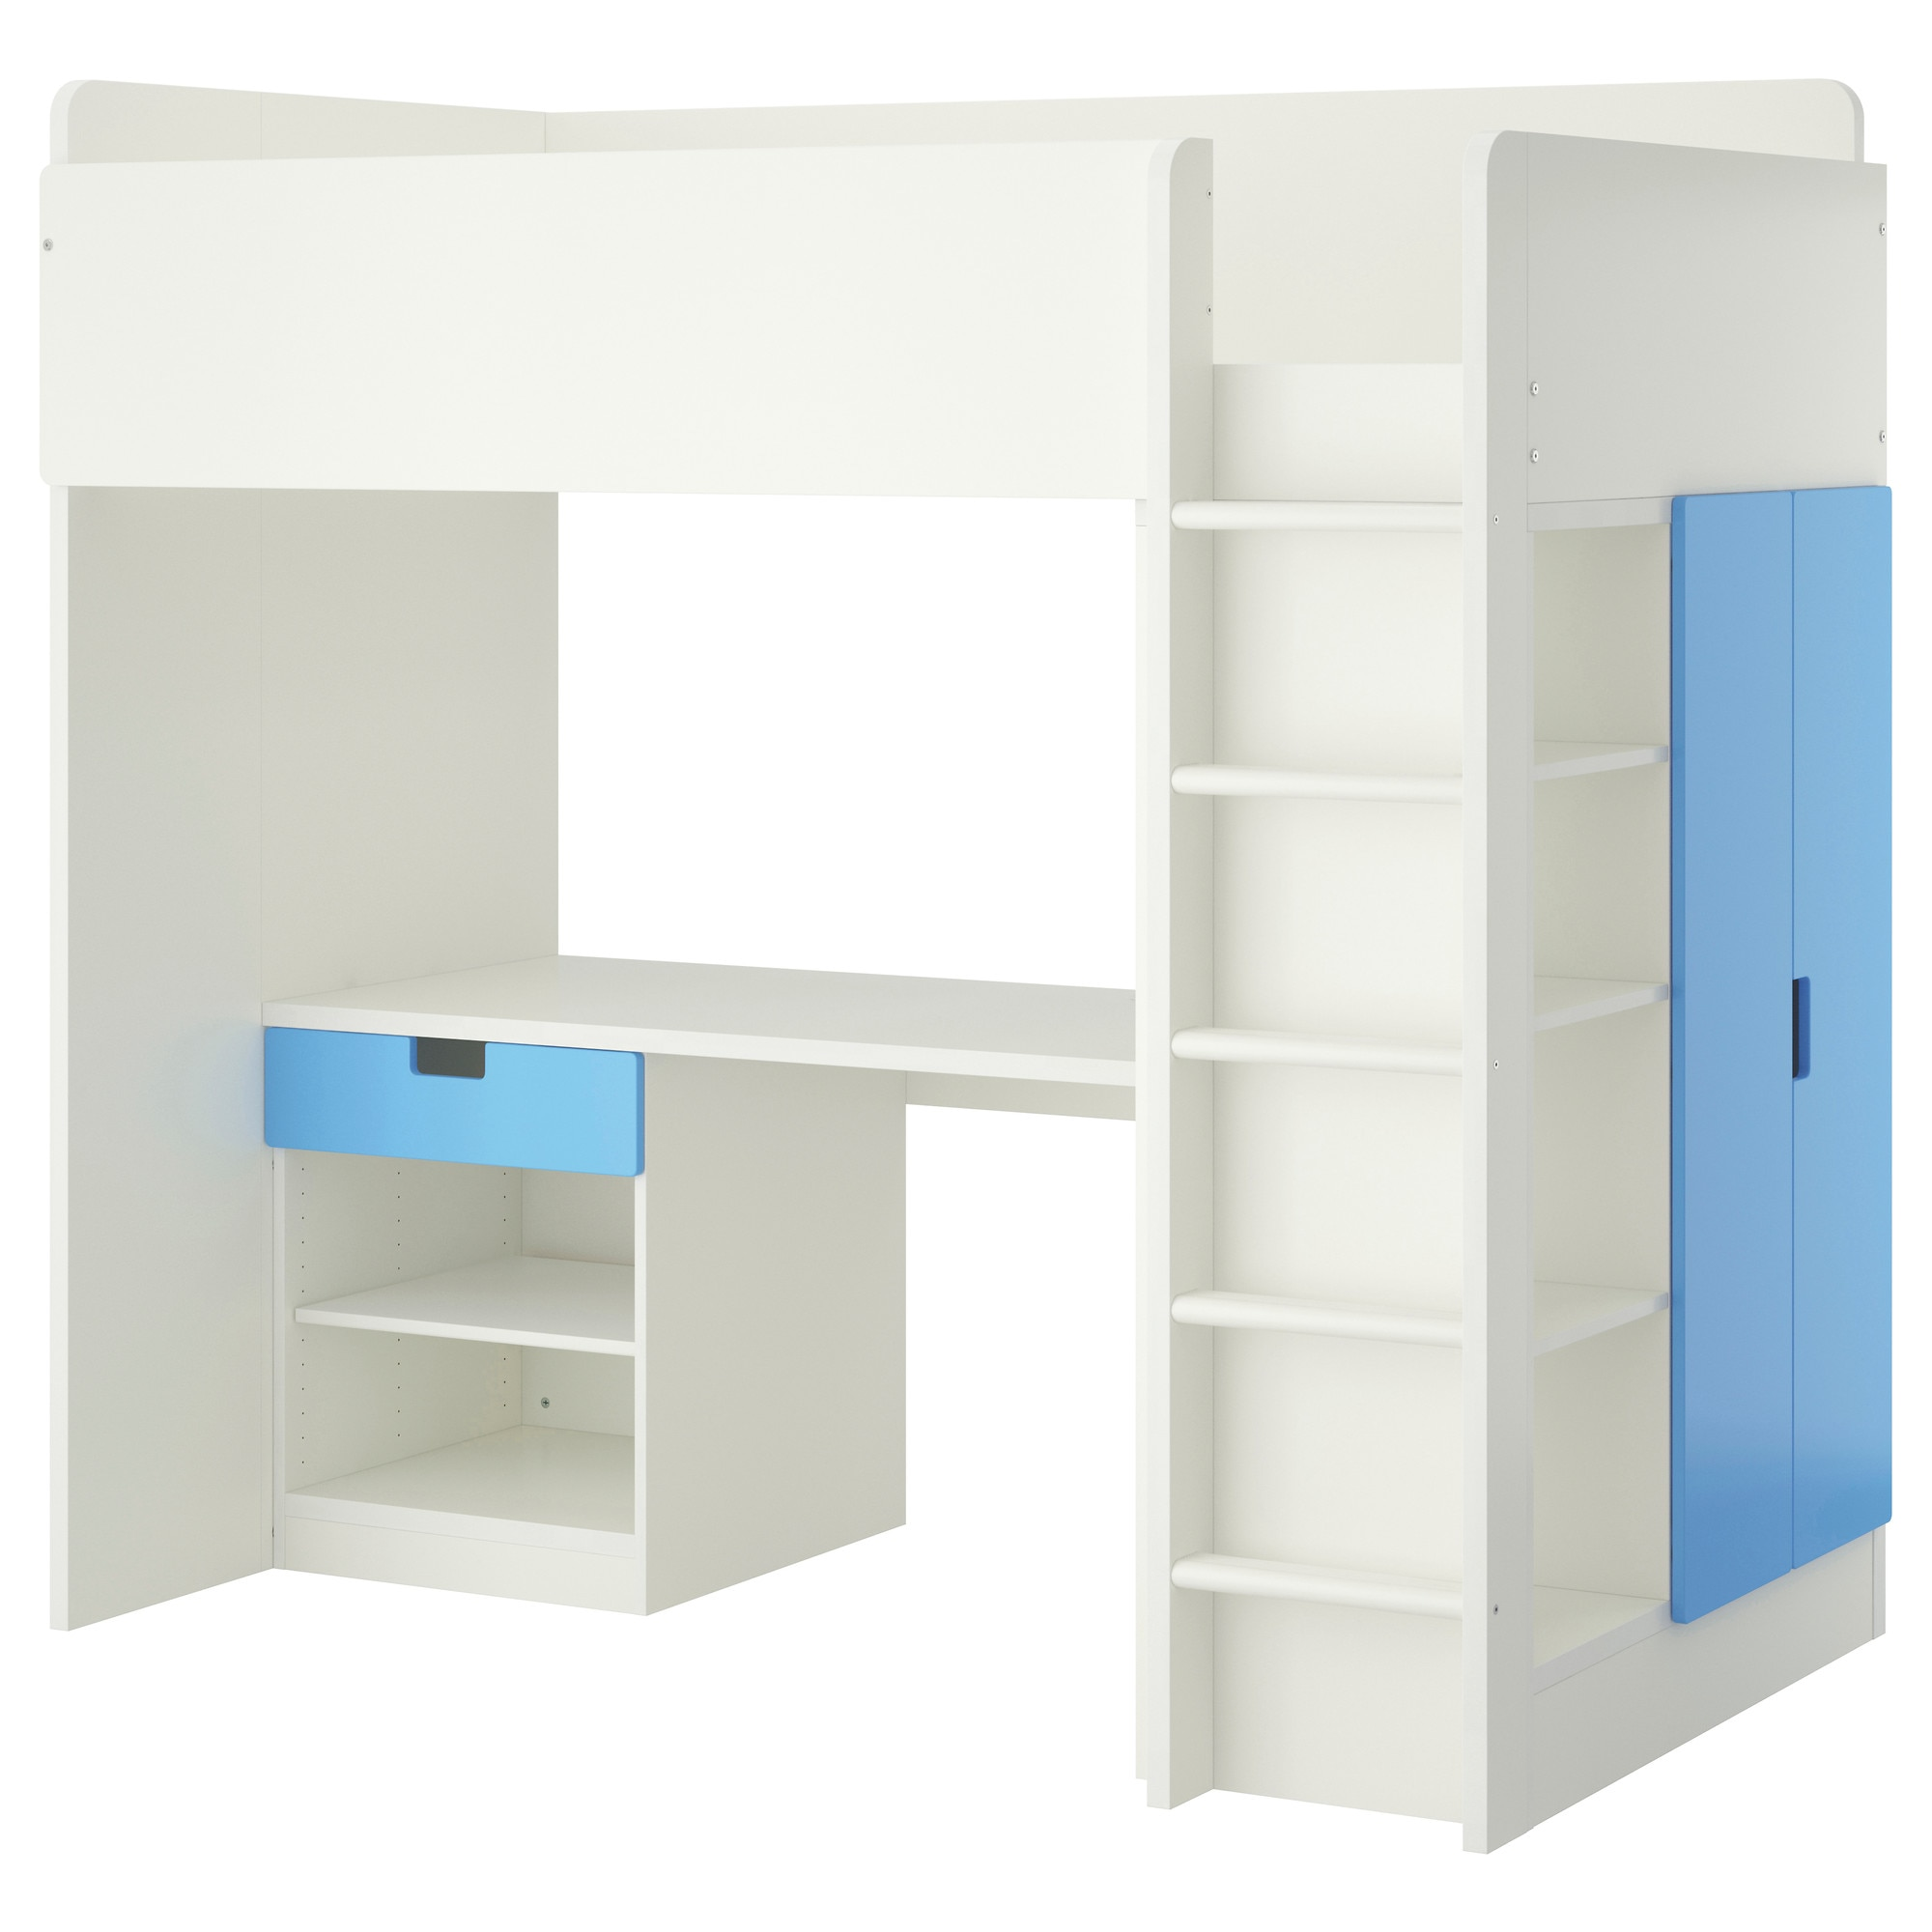 Bunk bed with desk underneath ikea - Stuva Loft Bed With 1 Drawer 2 Doors White Blue Height 76